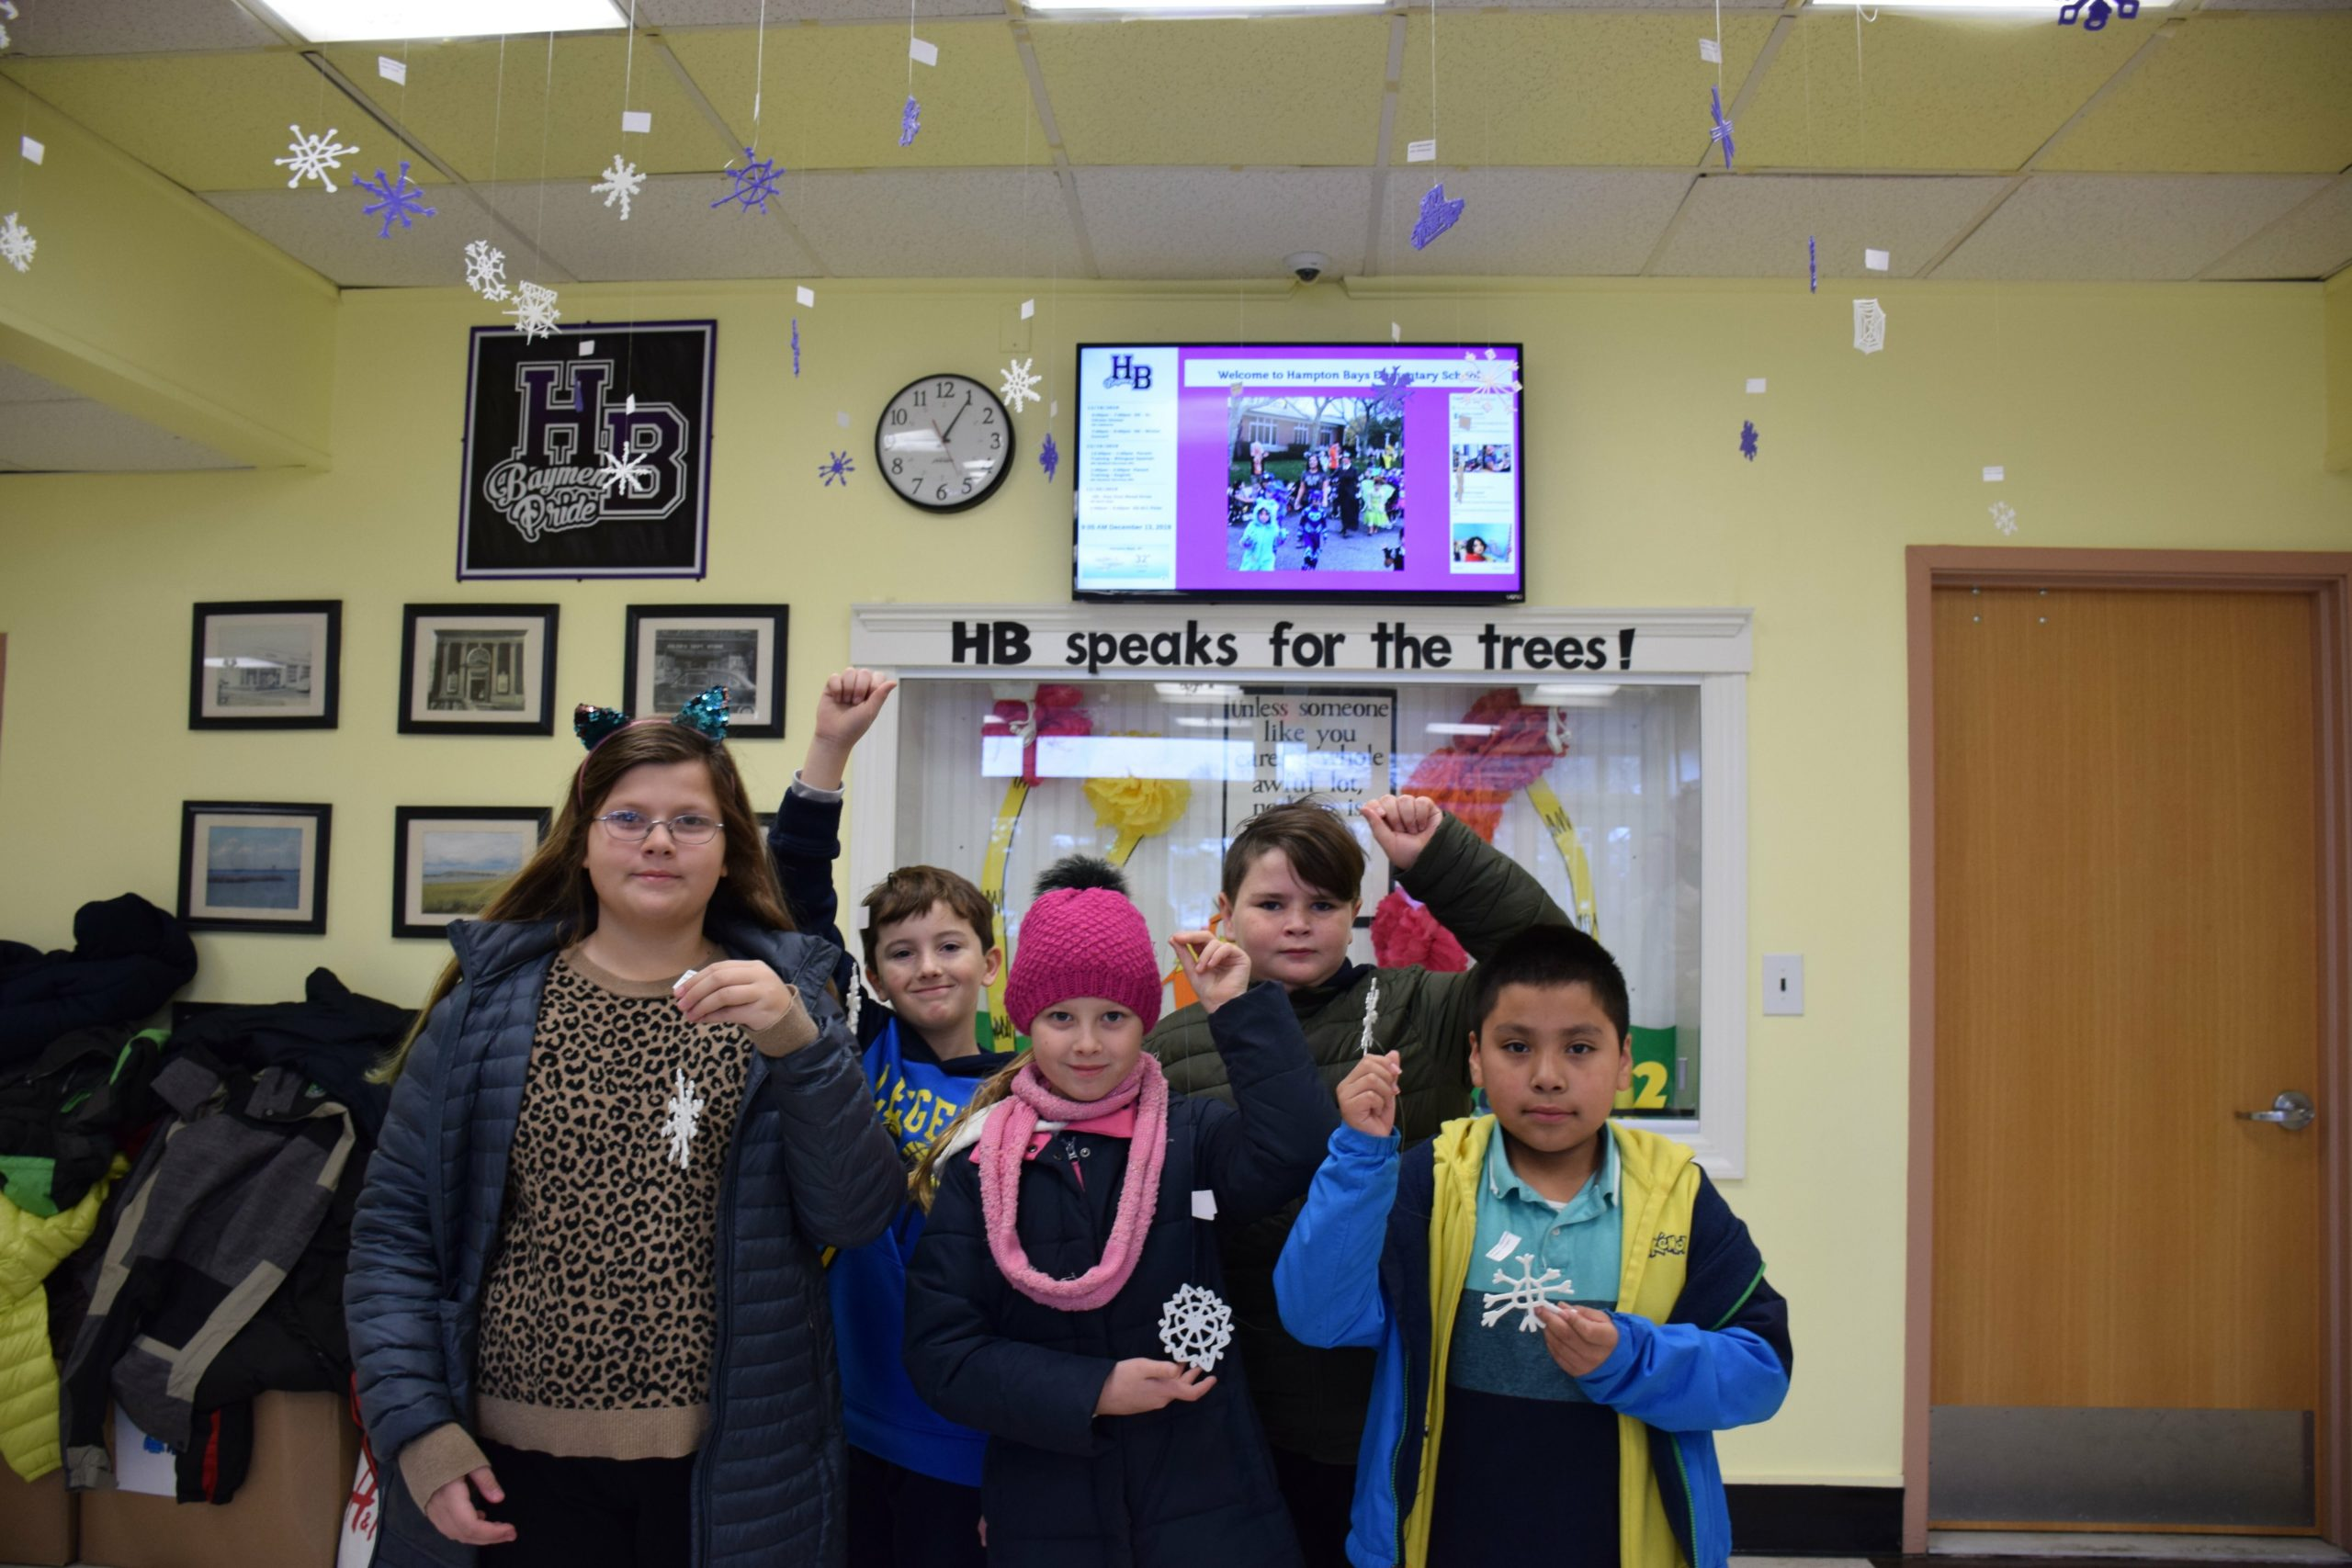 Hampton Bays Elementary School fourth-graders used 3D printing technology in their STEM classes to design symmetrical snowflakes. The 152 individually designed works of art are displayed in the main hallway of the school.